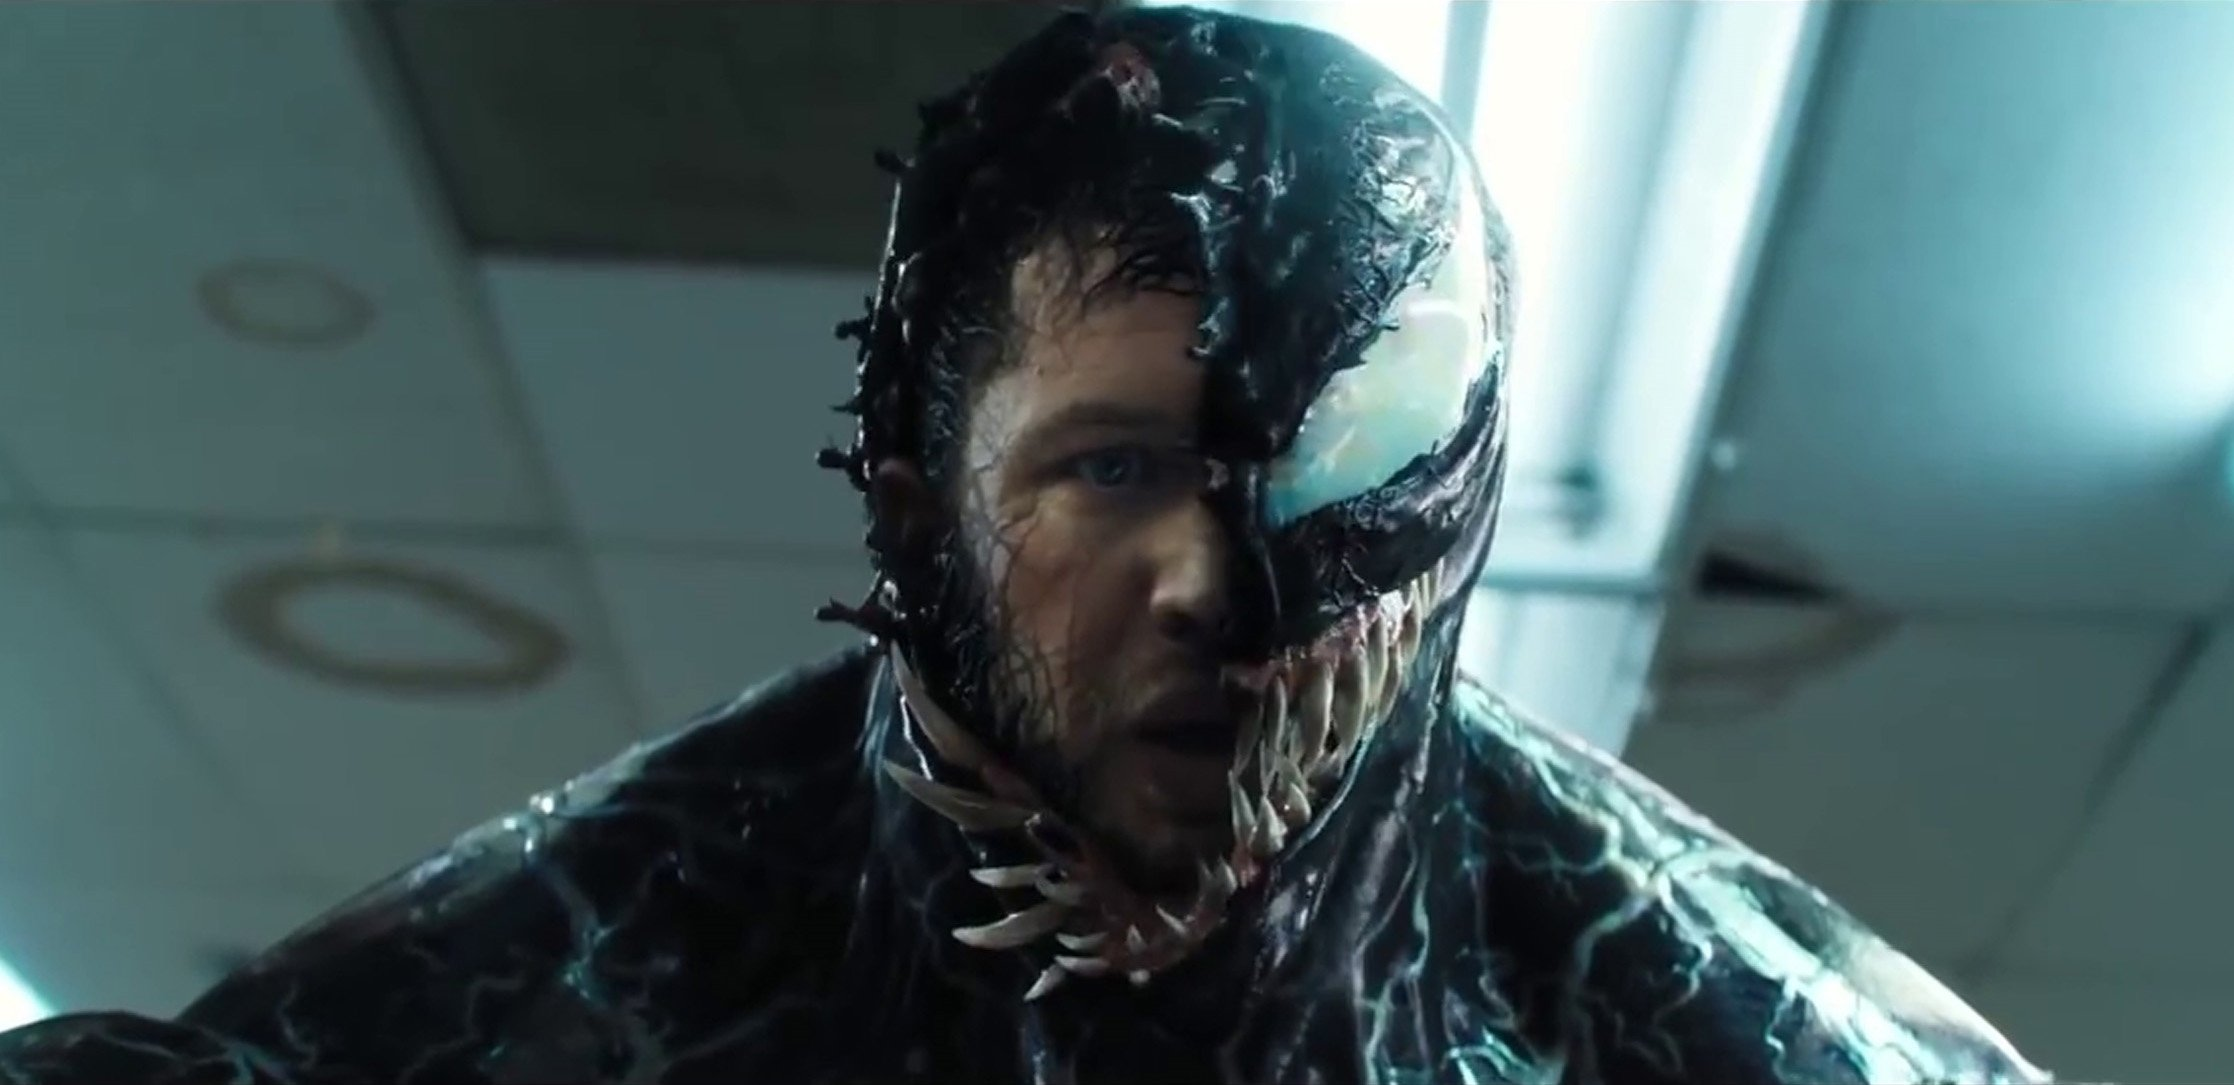 When does Venom come out on DVD in the UK? Release date, cast and trailer for Tom Hardy superhero movie